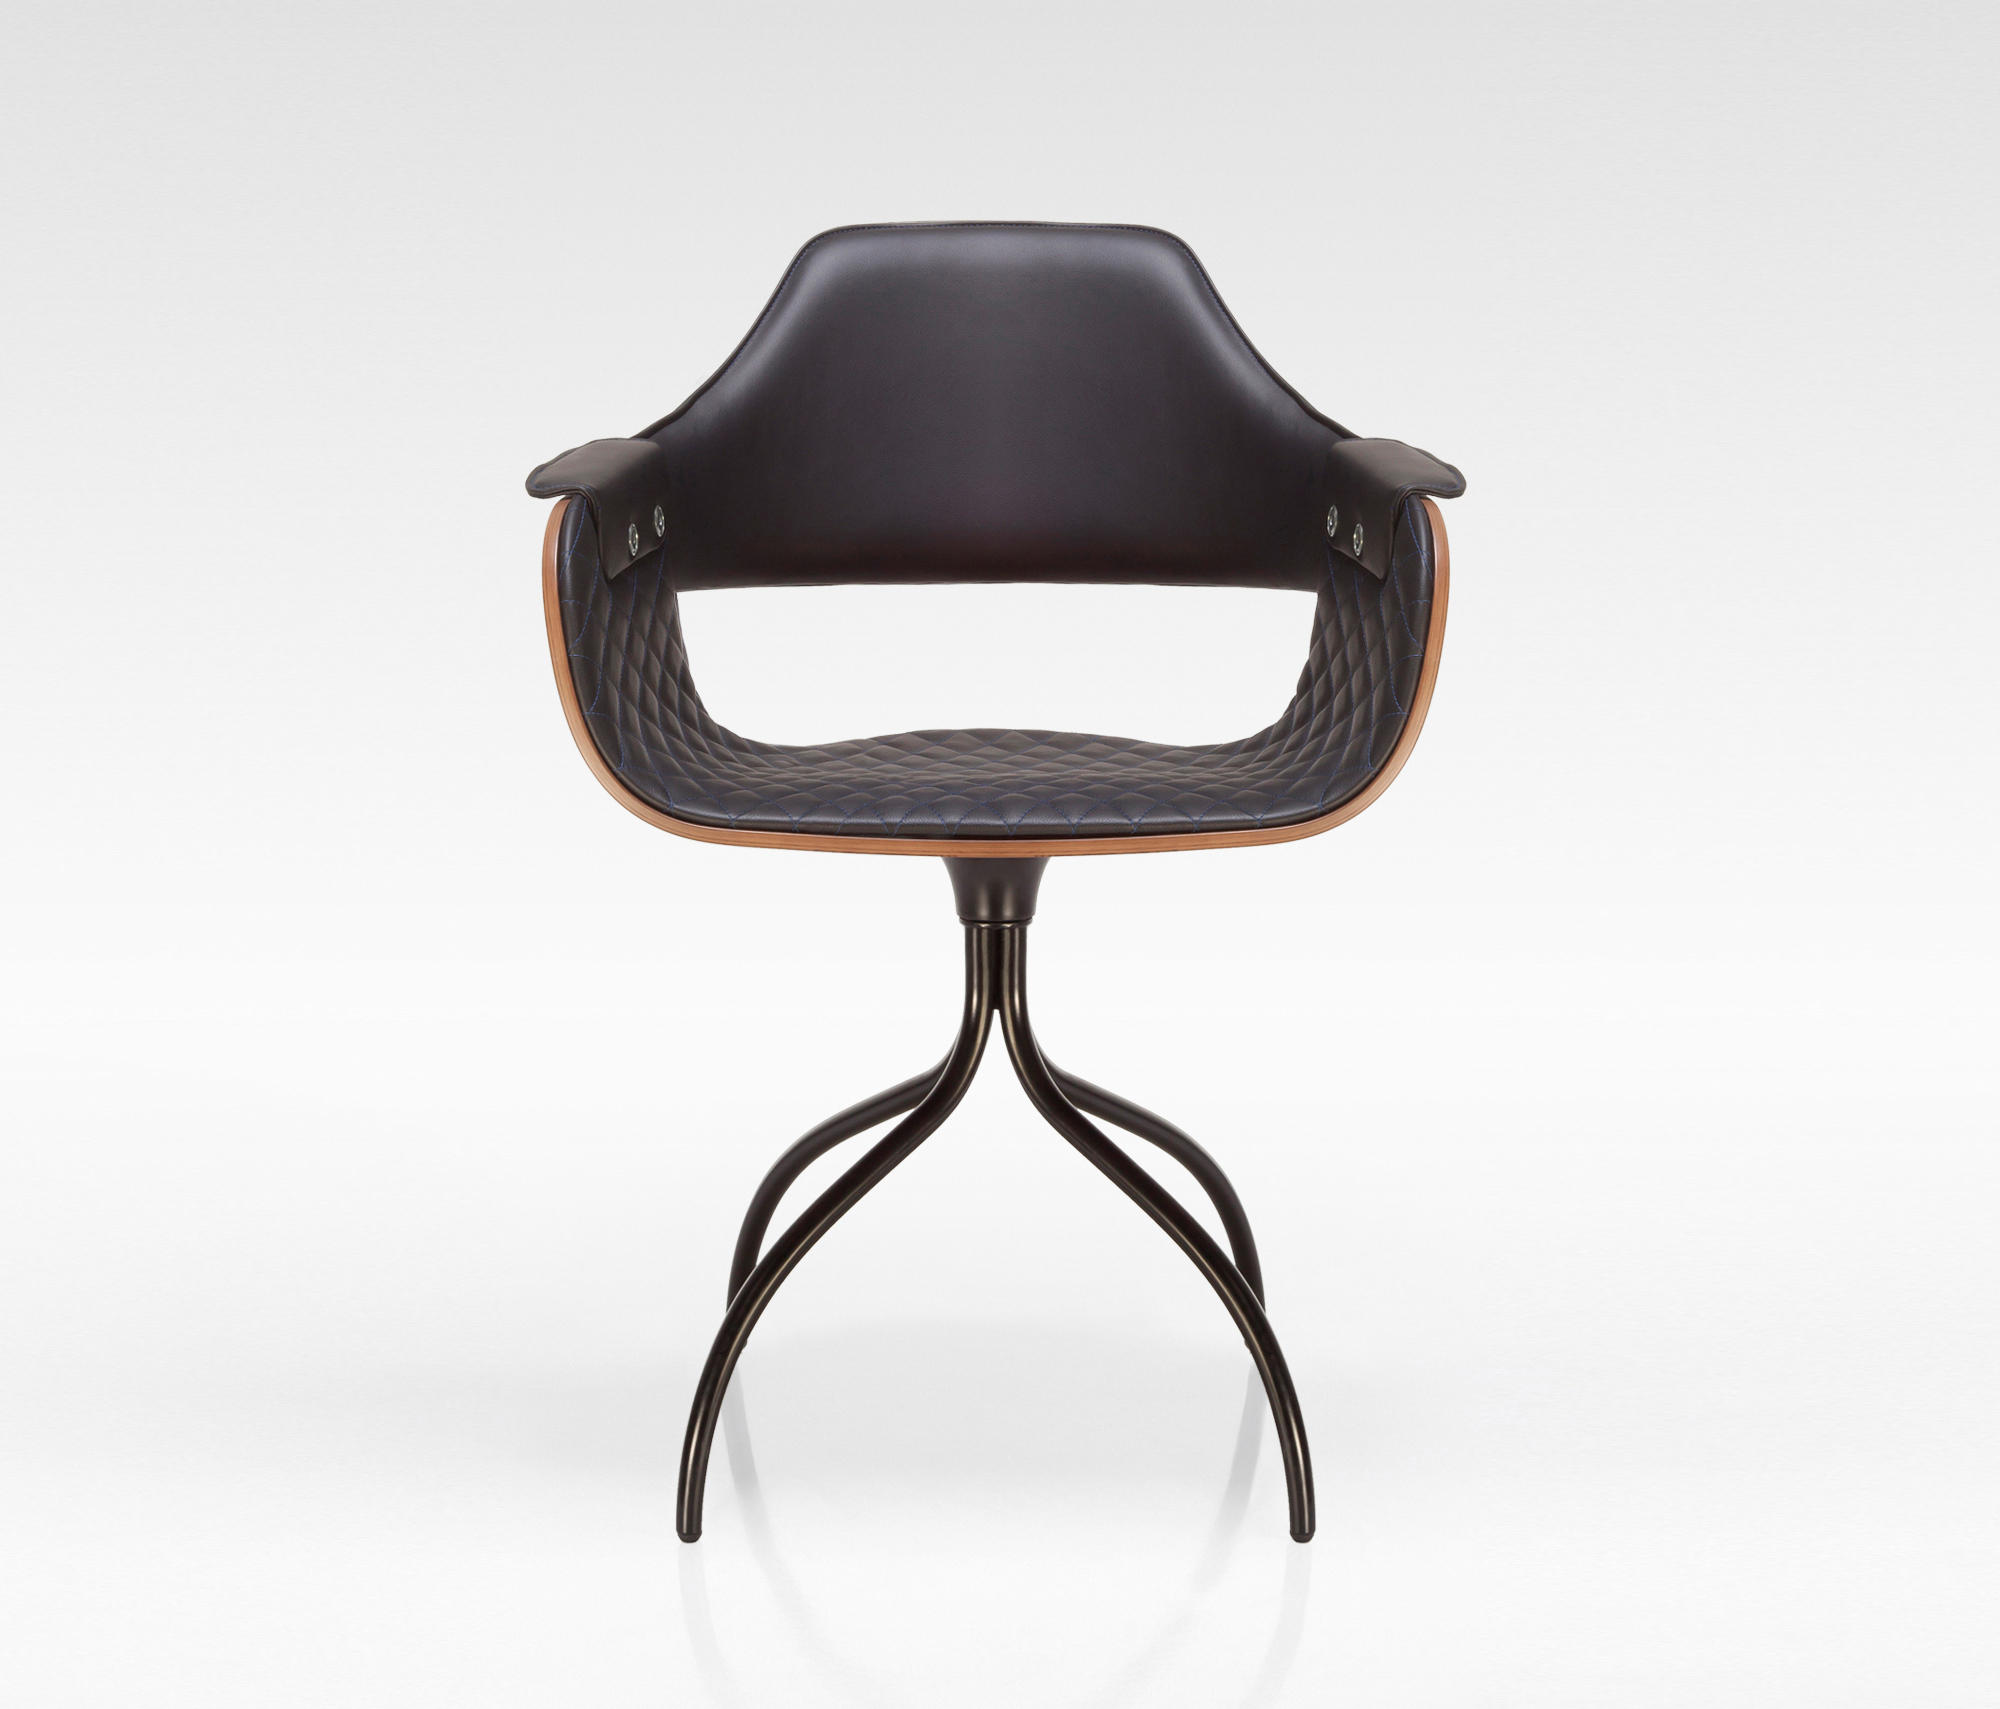 Incroyable Showtime Act II Chair By BD Barcelona | Chairs